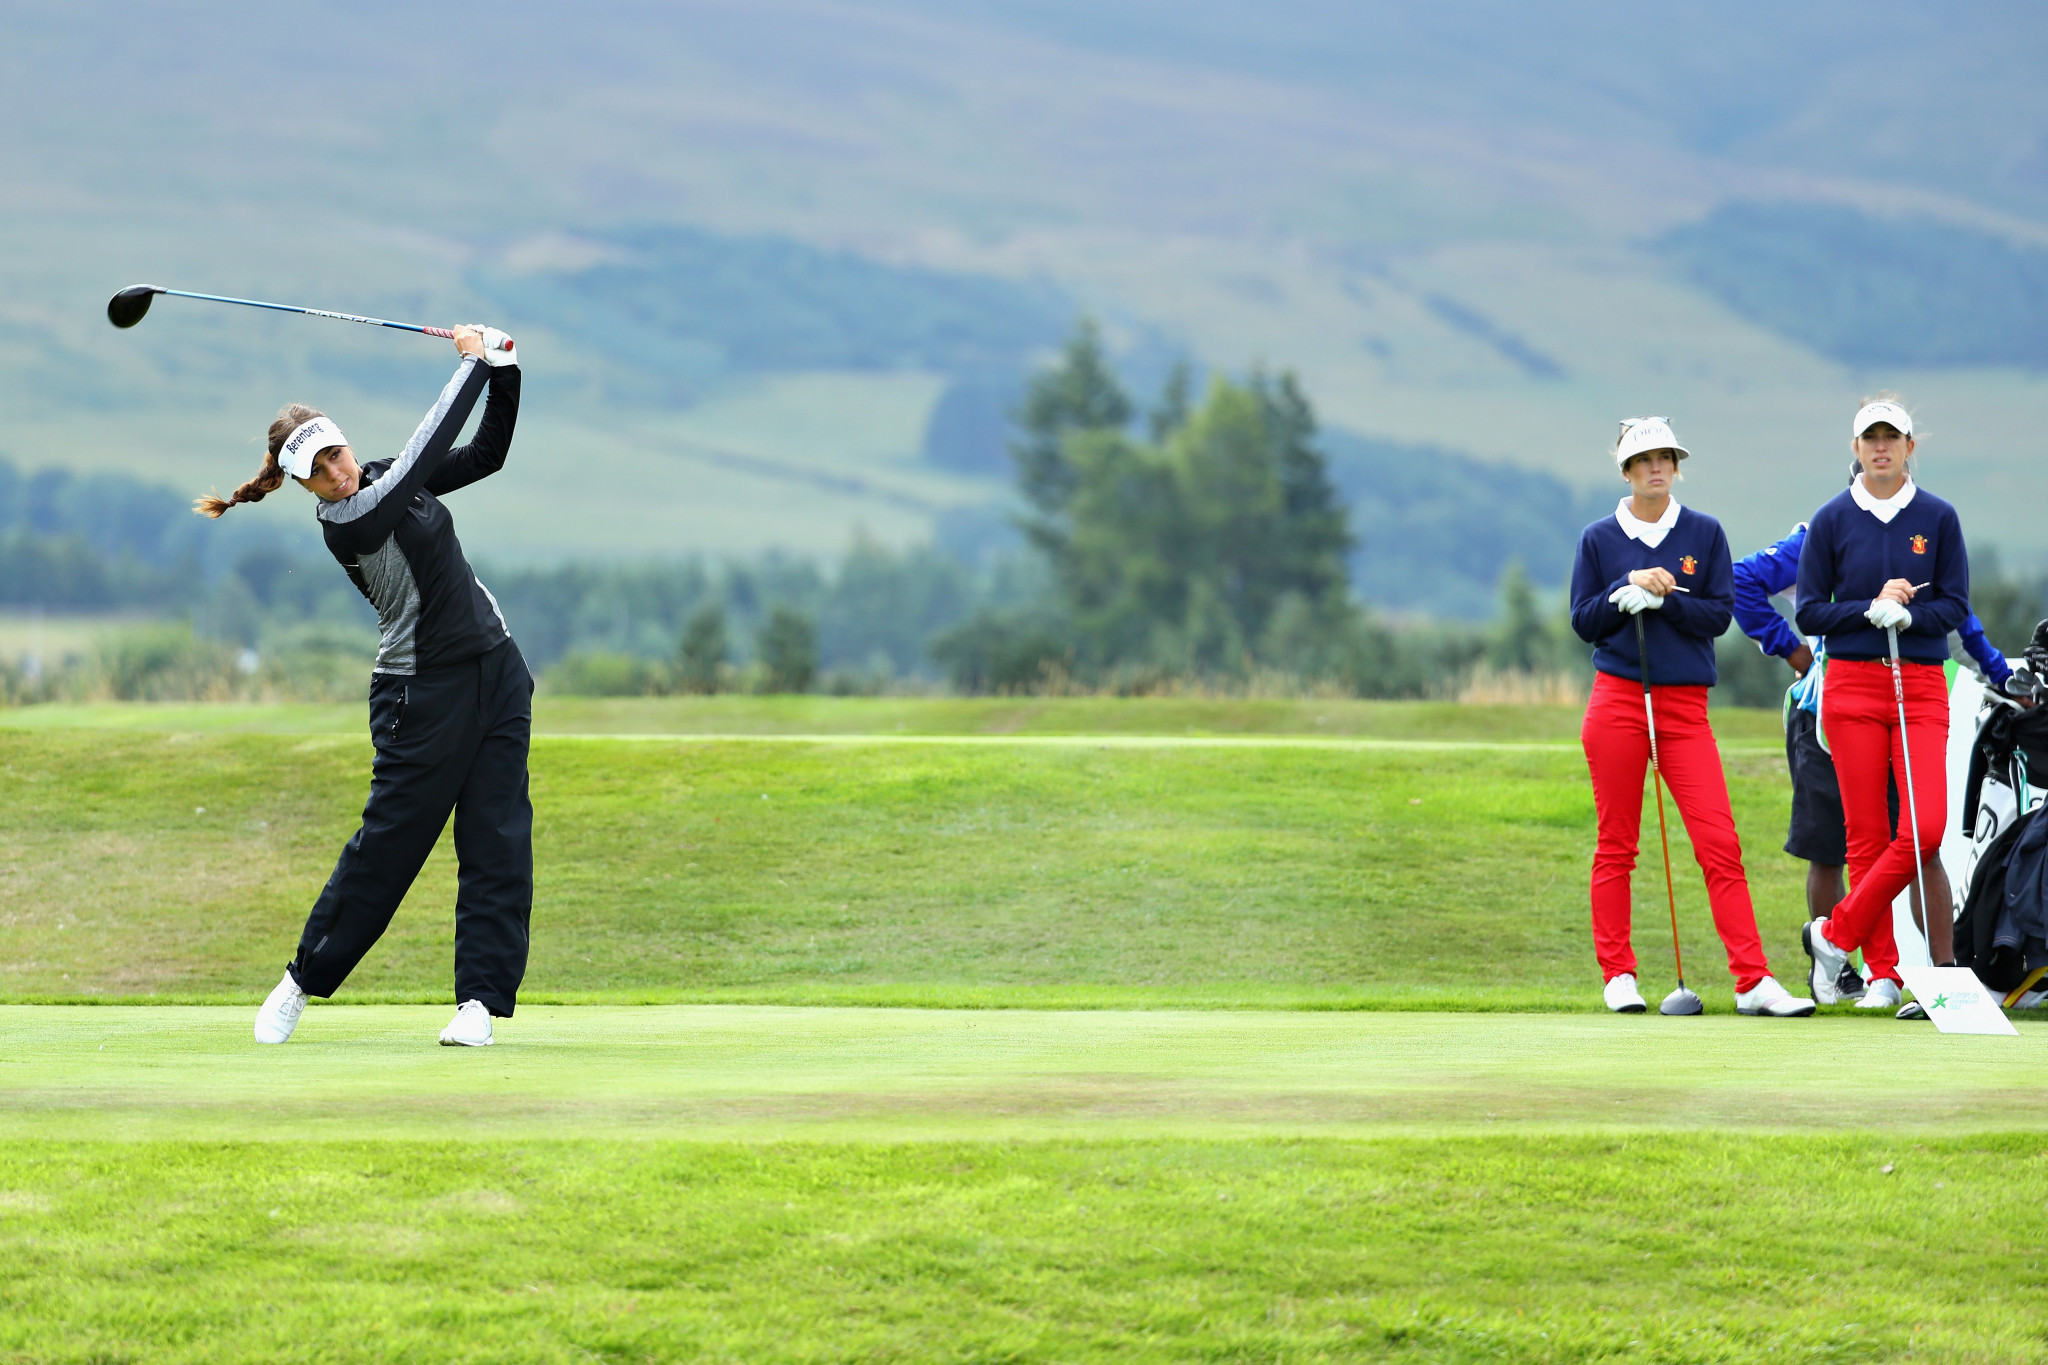 British Open champion Hall begins European Championships golf event with victory